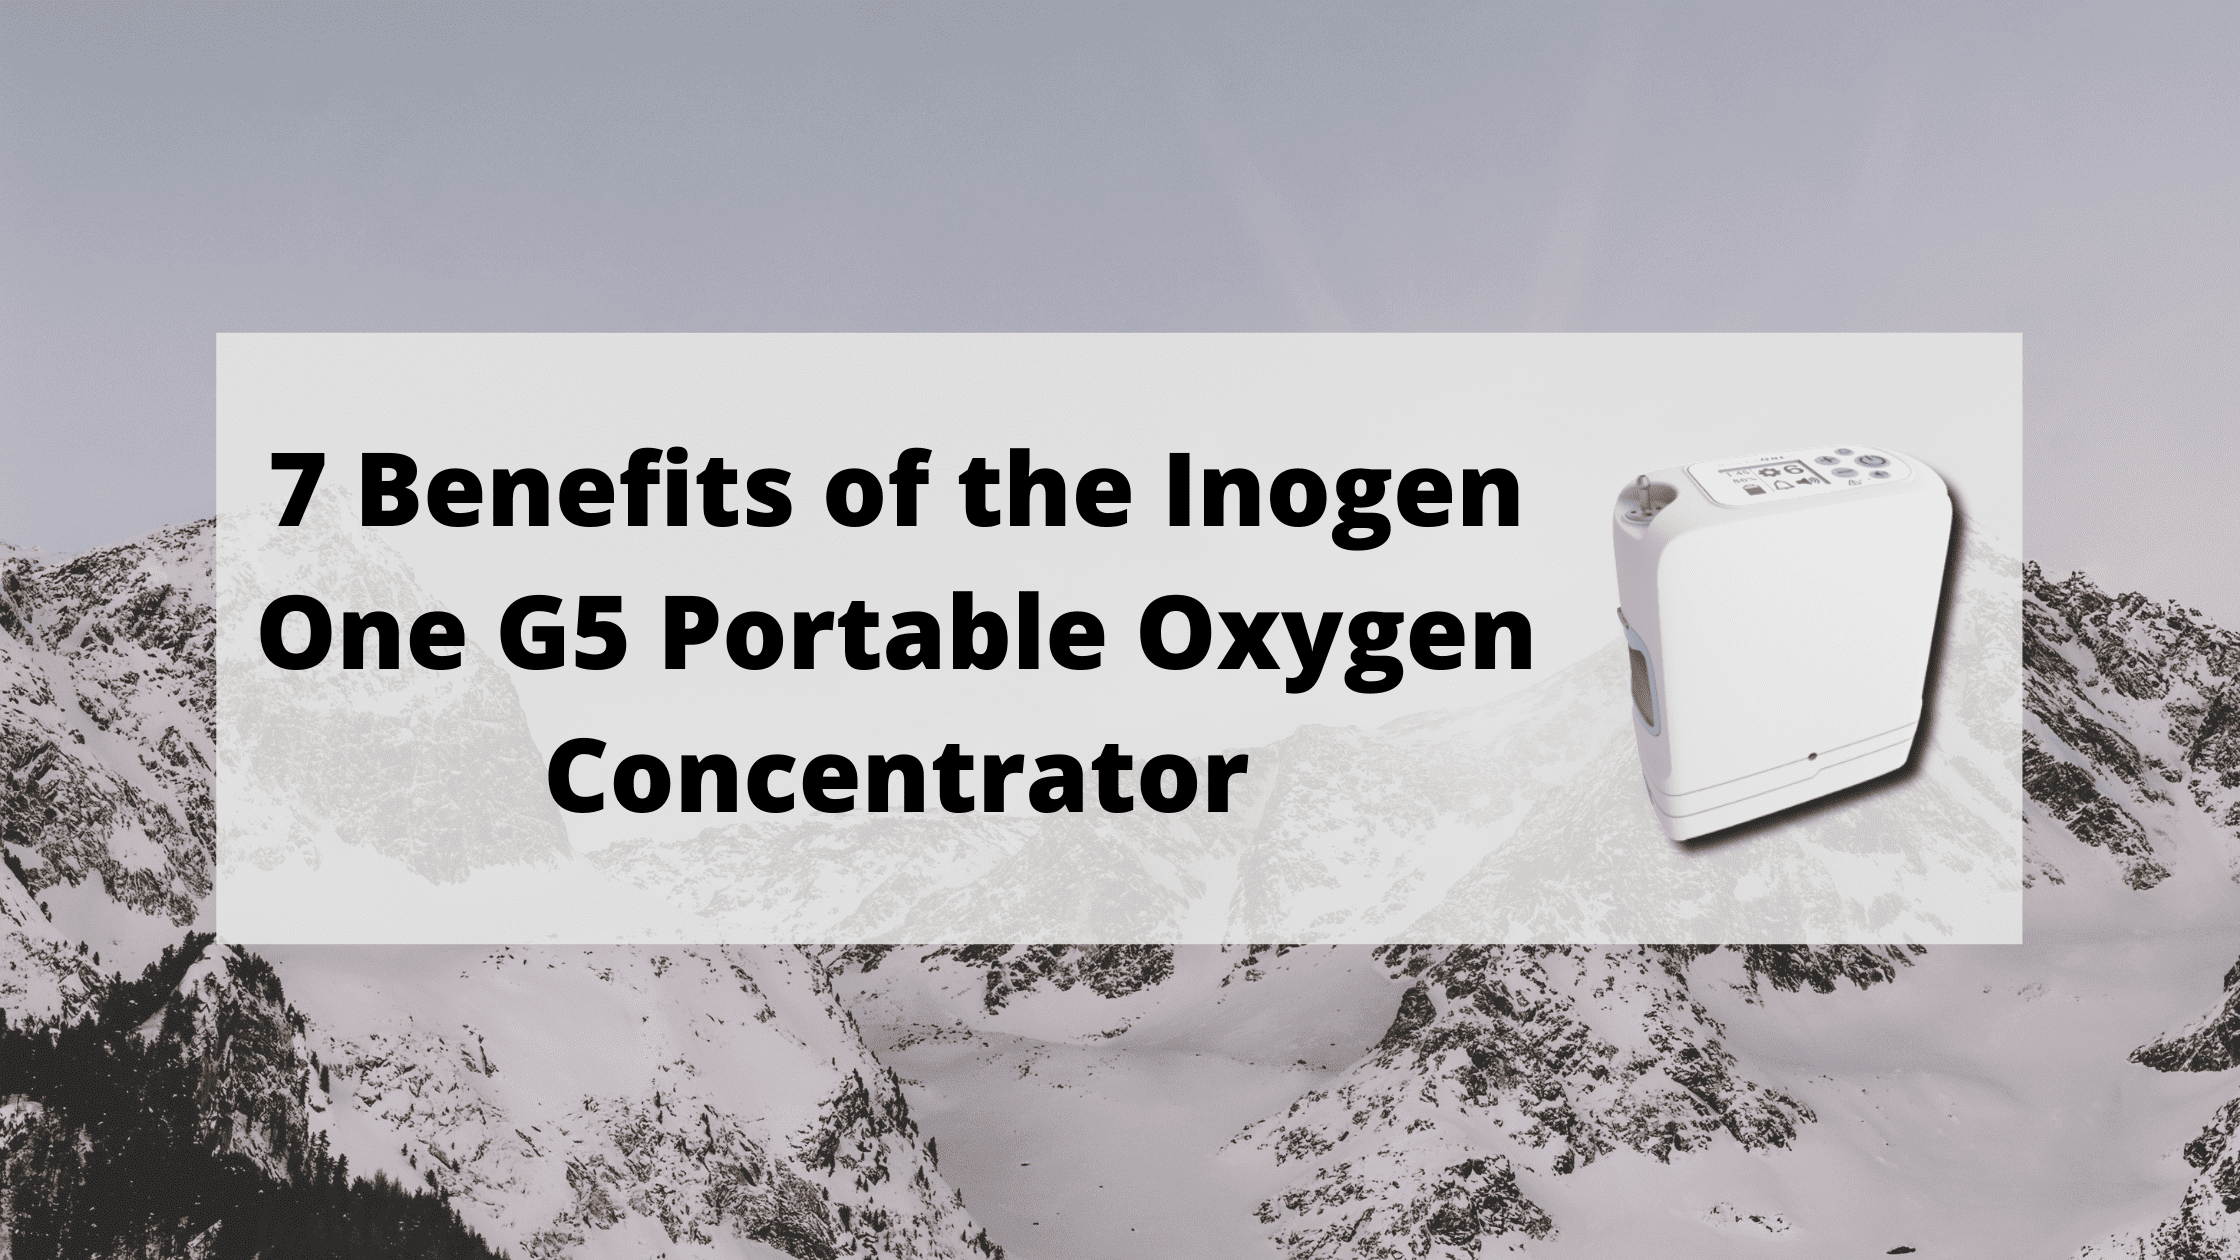 7 Benefits of the Inogen One G5 Portable Oxygen Concentrator